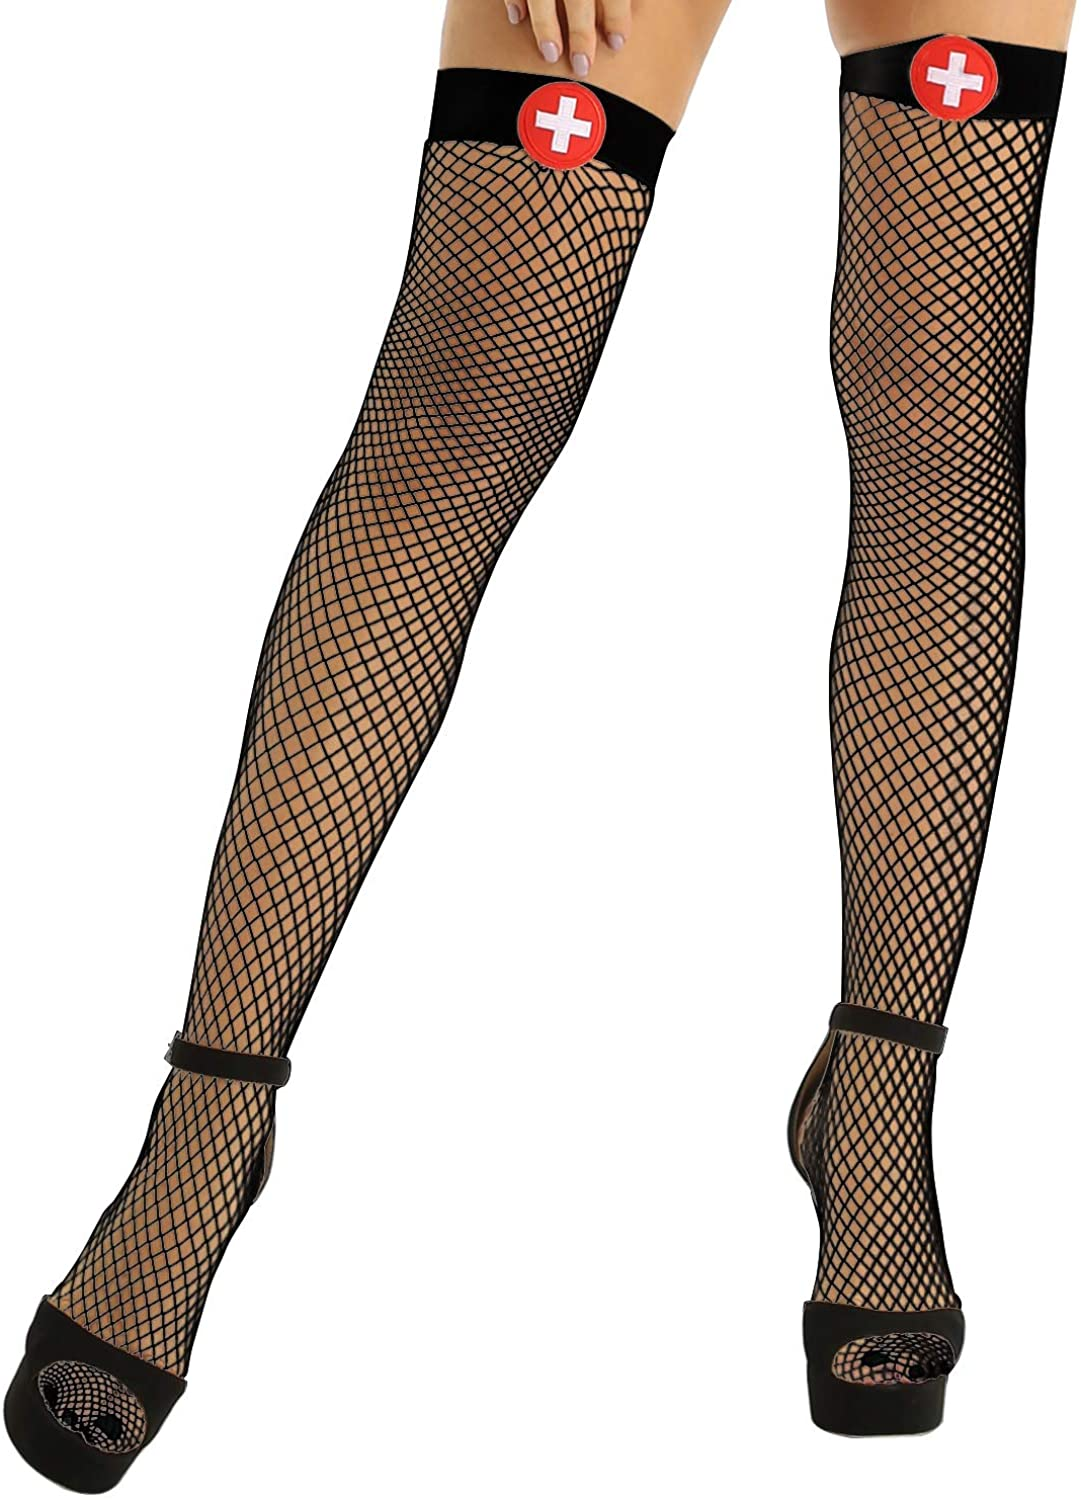 MSemis Woman Fishnet Thigh-High Stockings Pantyhose Tights Halloween Anime Costume Cosplay Lingerie